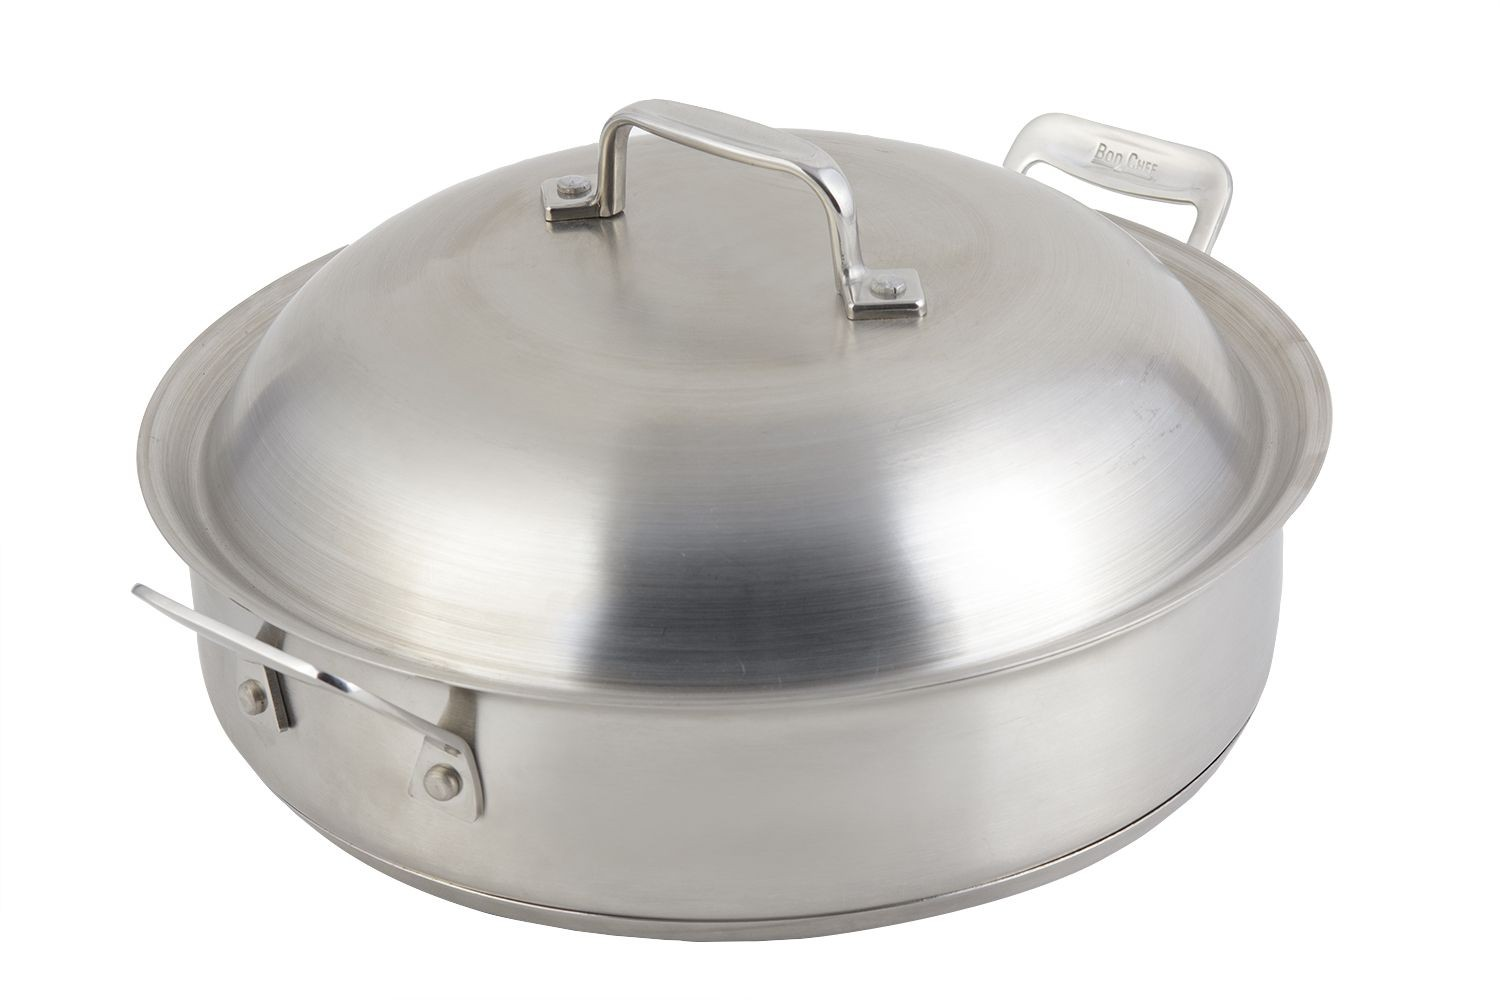 Bon Chef 60001 Cucina Stainless Steel Saute Pan With Lid 4 Qt